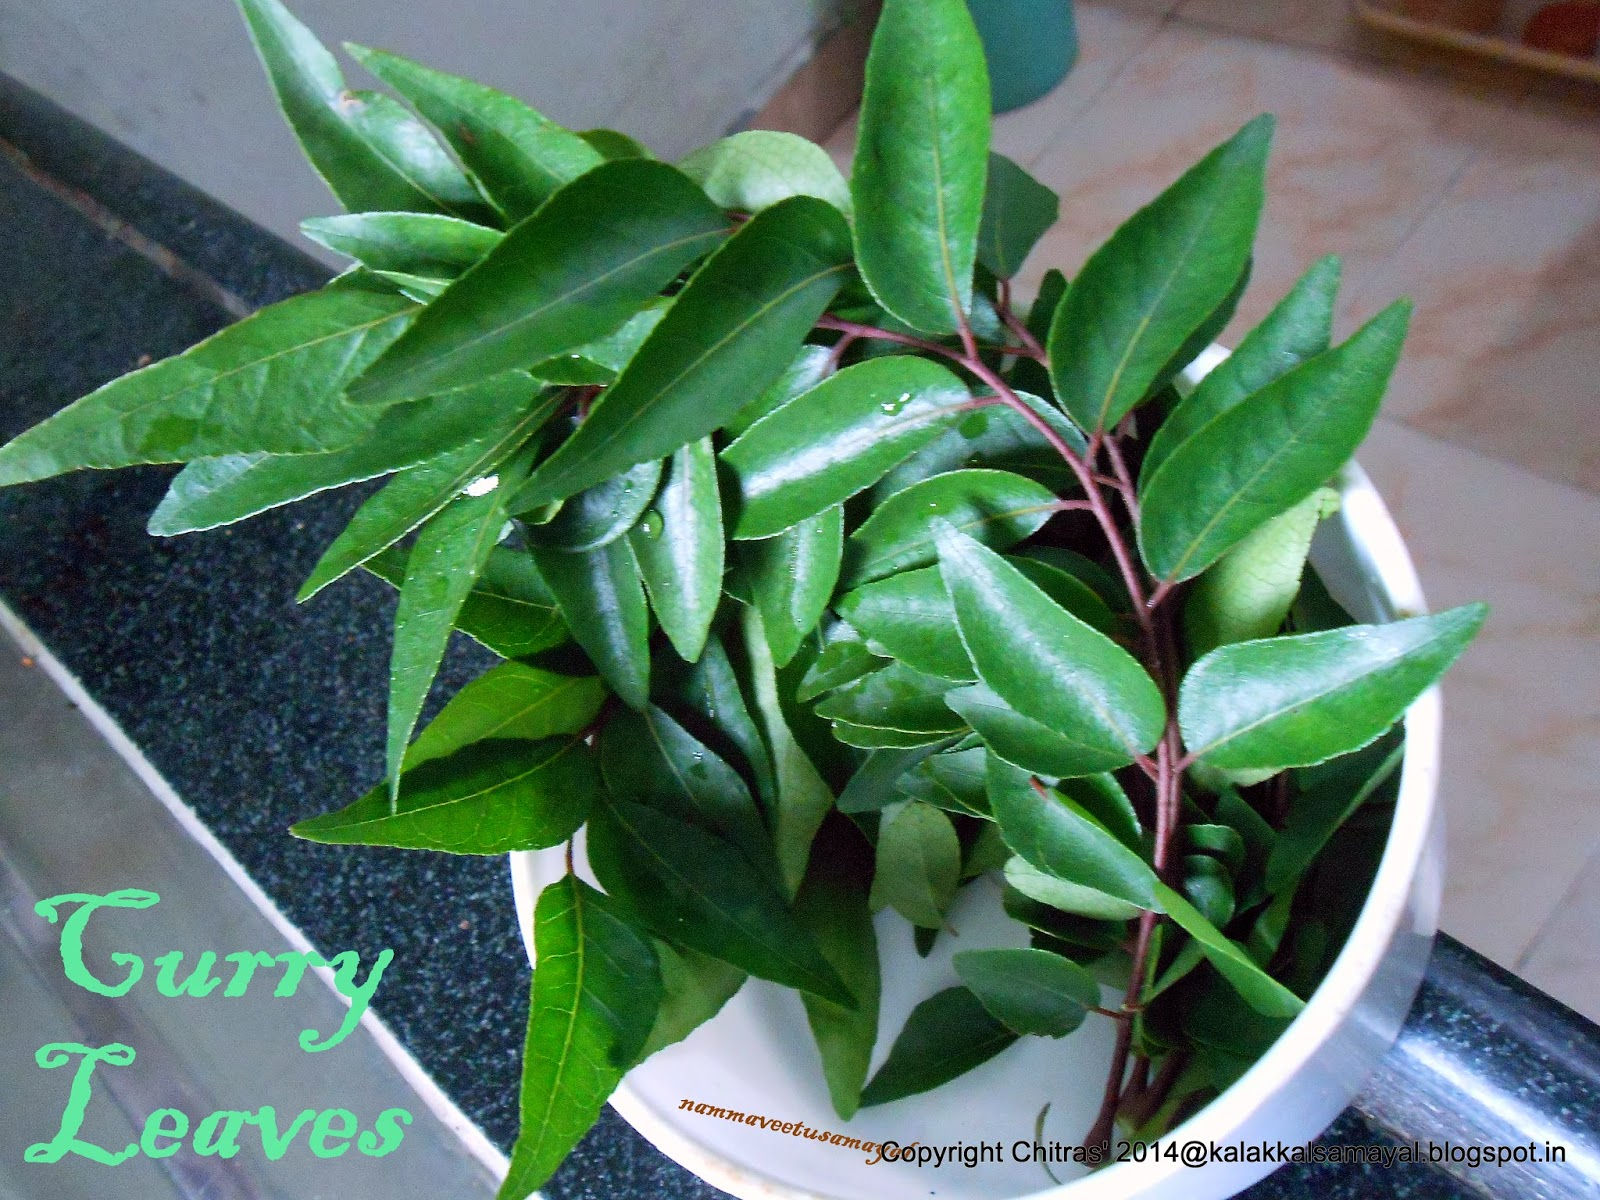 Tamil : Karuvaeppilai; English : Curry leaves